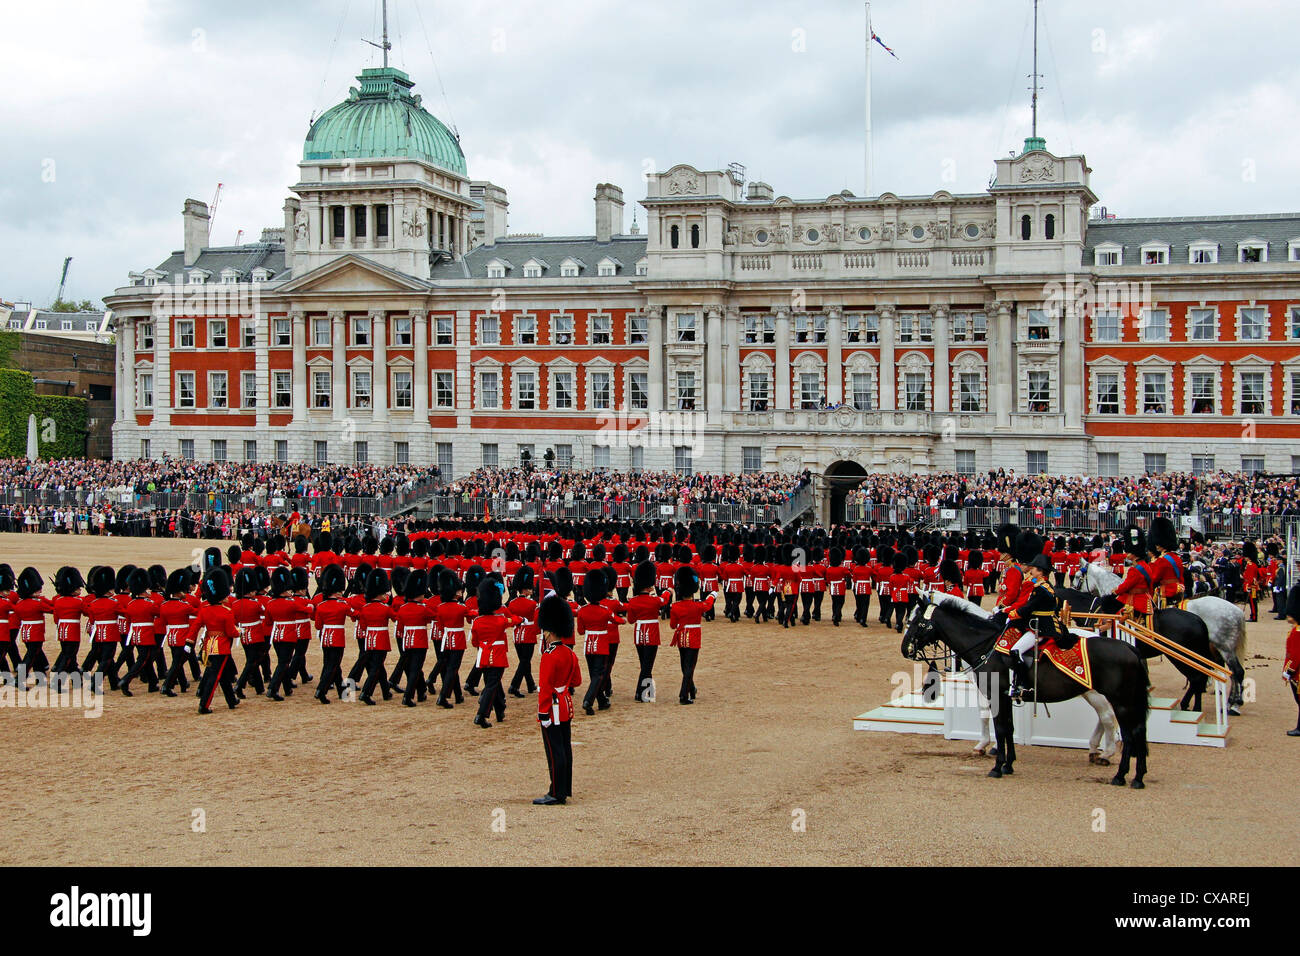 Soldiers at Trooping the Colour 2012, The Birthday Parade of the Queen, Horse Guards, London, England, United Kingdom, - Stock Image